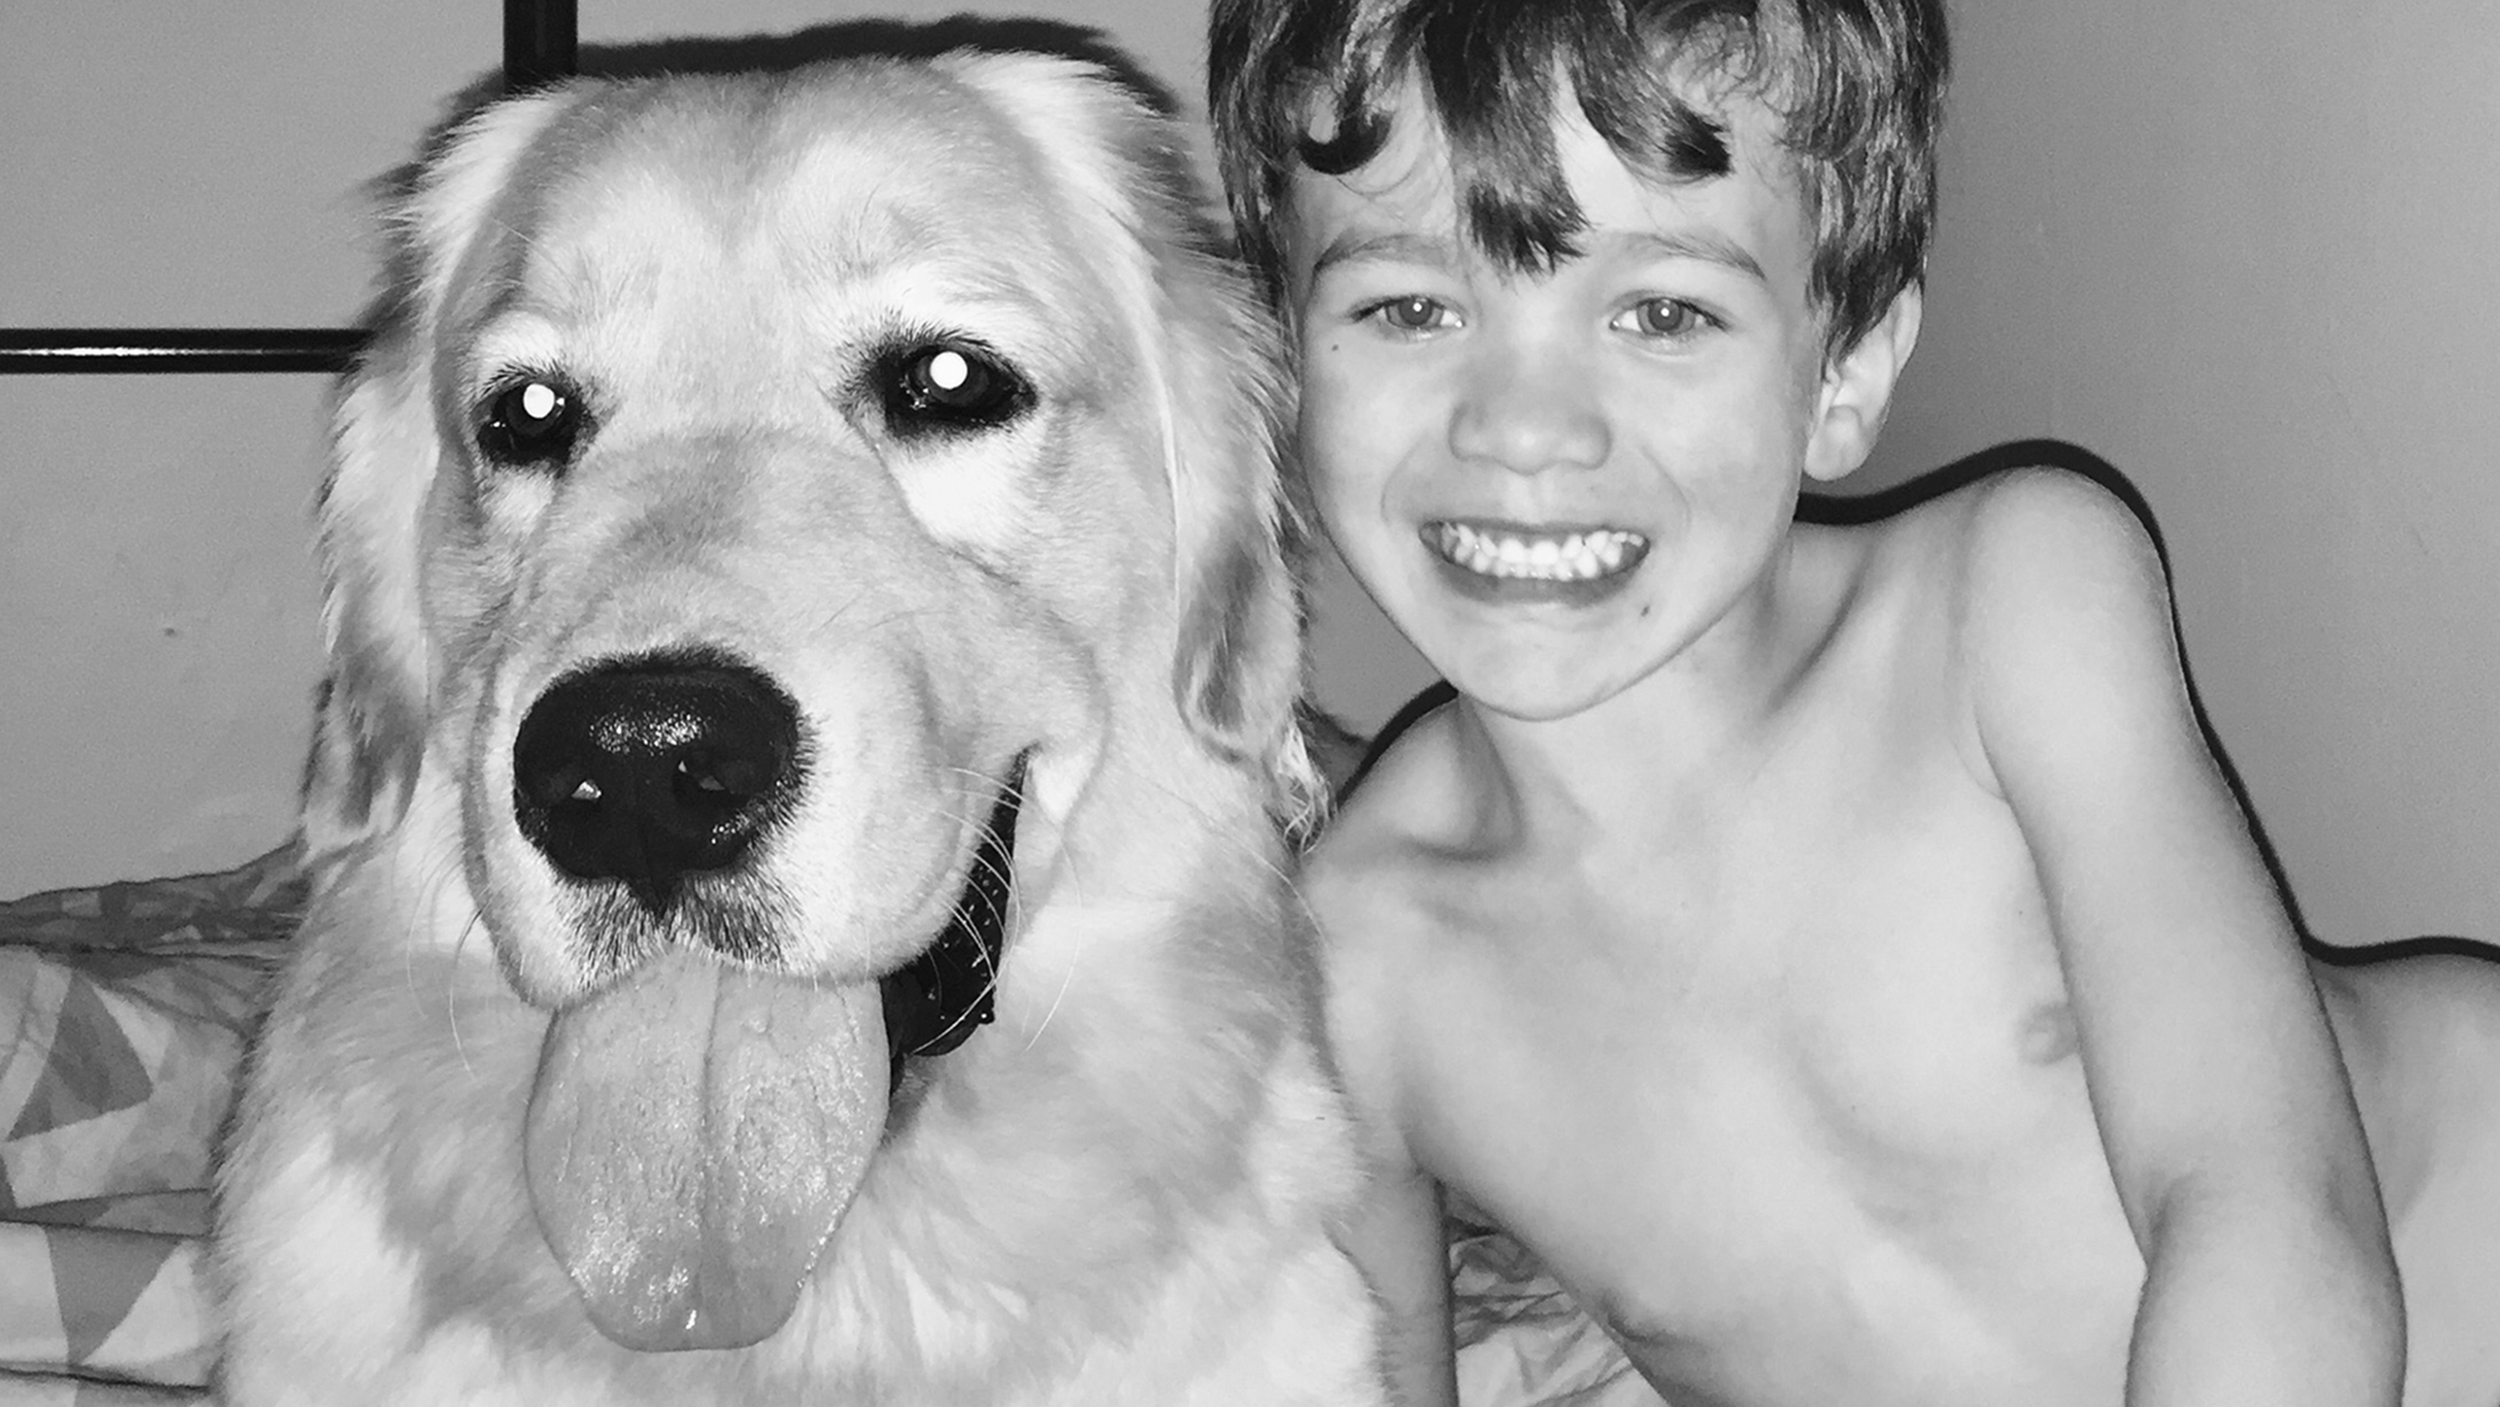 Boy with autism gets service dog to help him thrive